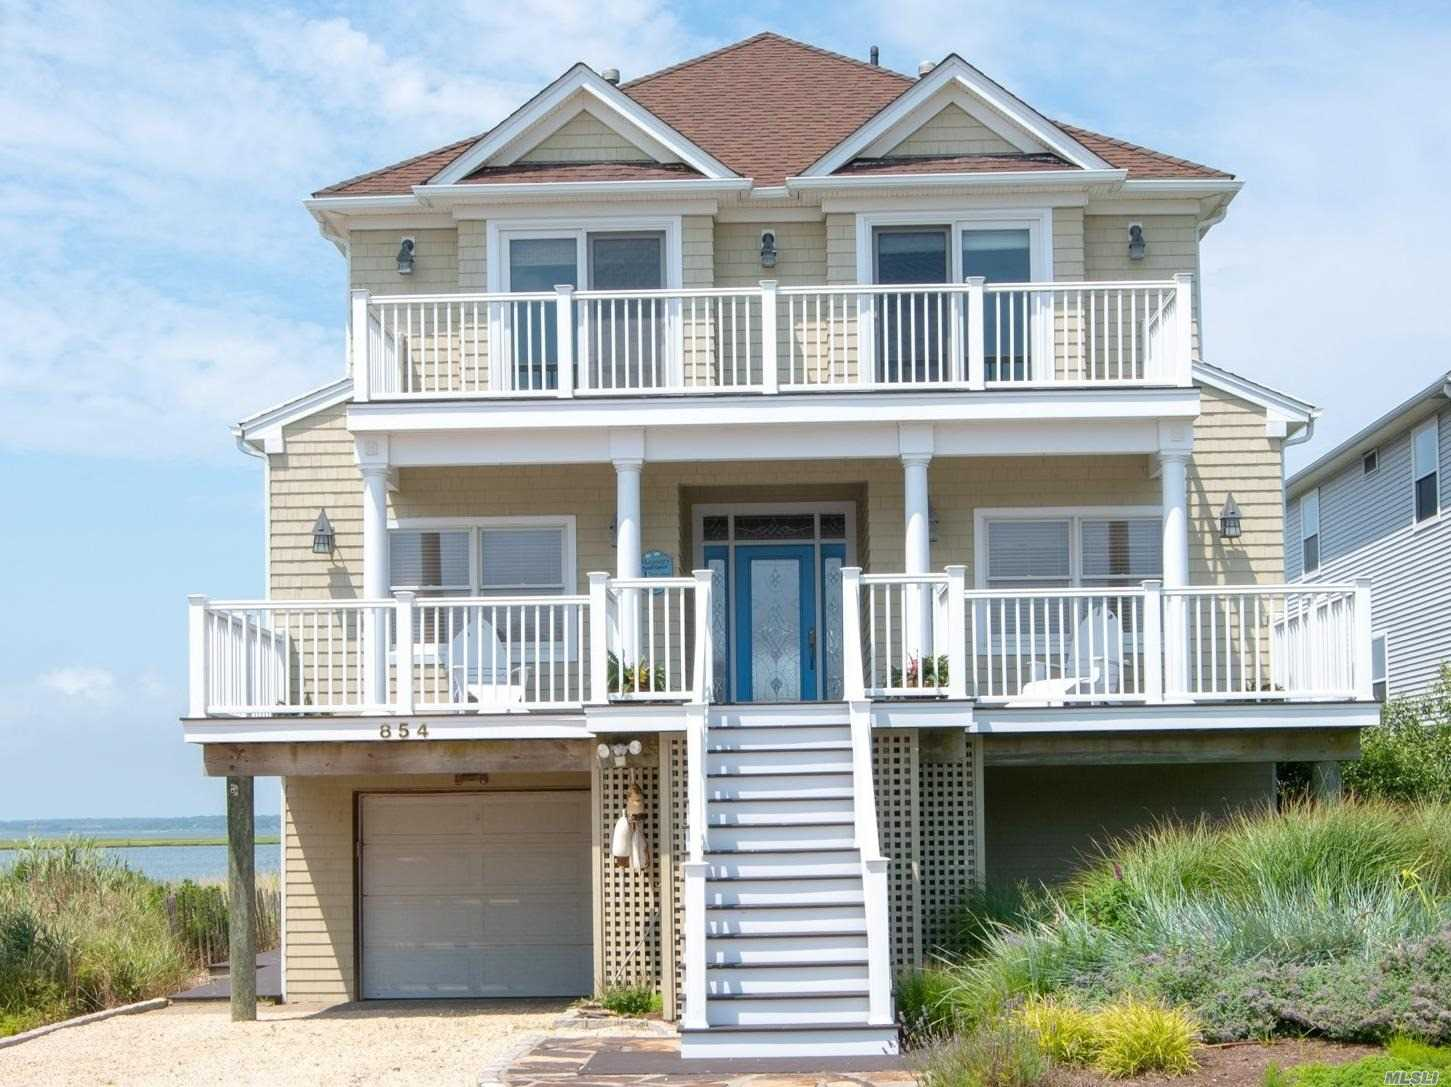 This 6 Bedroom, 4 Bath Beach House Includes Both Jr. & Master En-Suite Bedrooms, Den/Family Room, Oversized Eat-In Kitchen W/Island, New Stainless Steel Appliances And Cabinets, New Wood Floors On 1st & 2nd Floor, Formal Living Room, 3rd Floor Loft/Office. Oversized Front Porch And Extensive Decking Overlooking Moriches Bay To Watch The Breathtaking Sunsets! Ocean Access Steps Away!